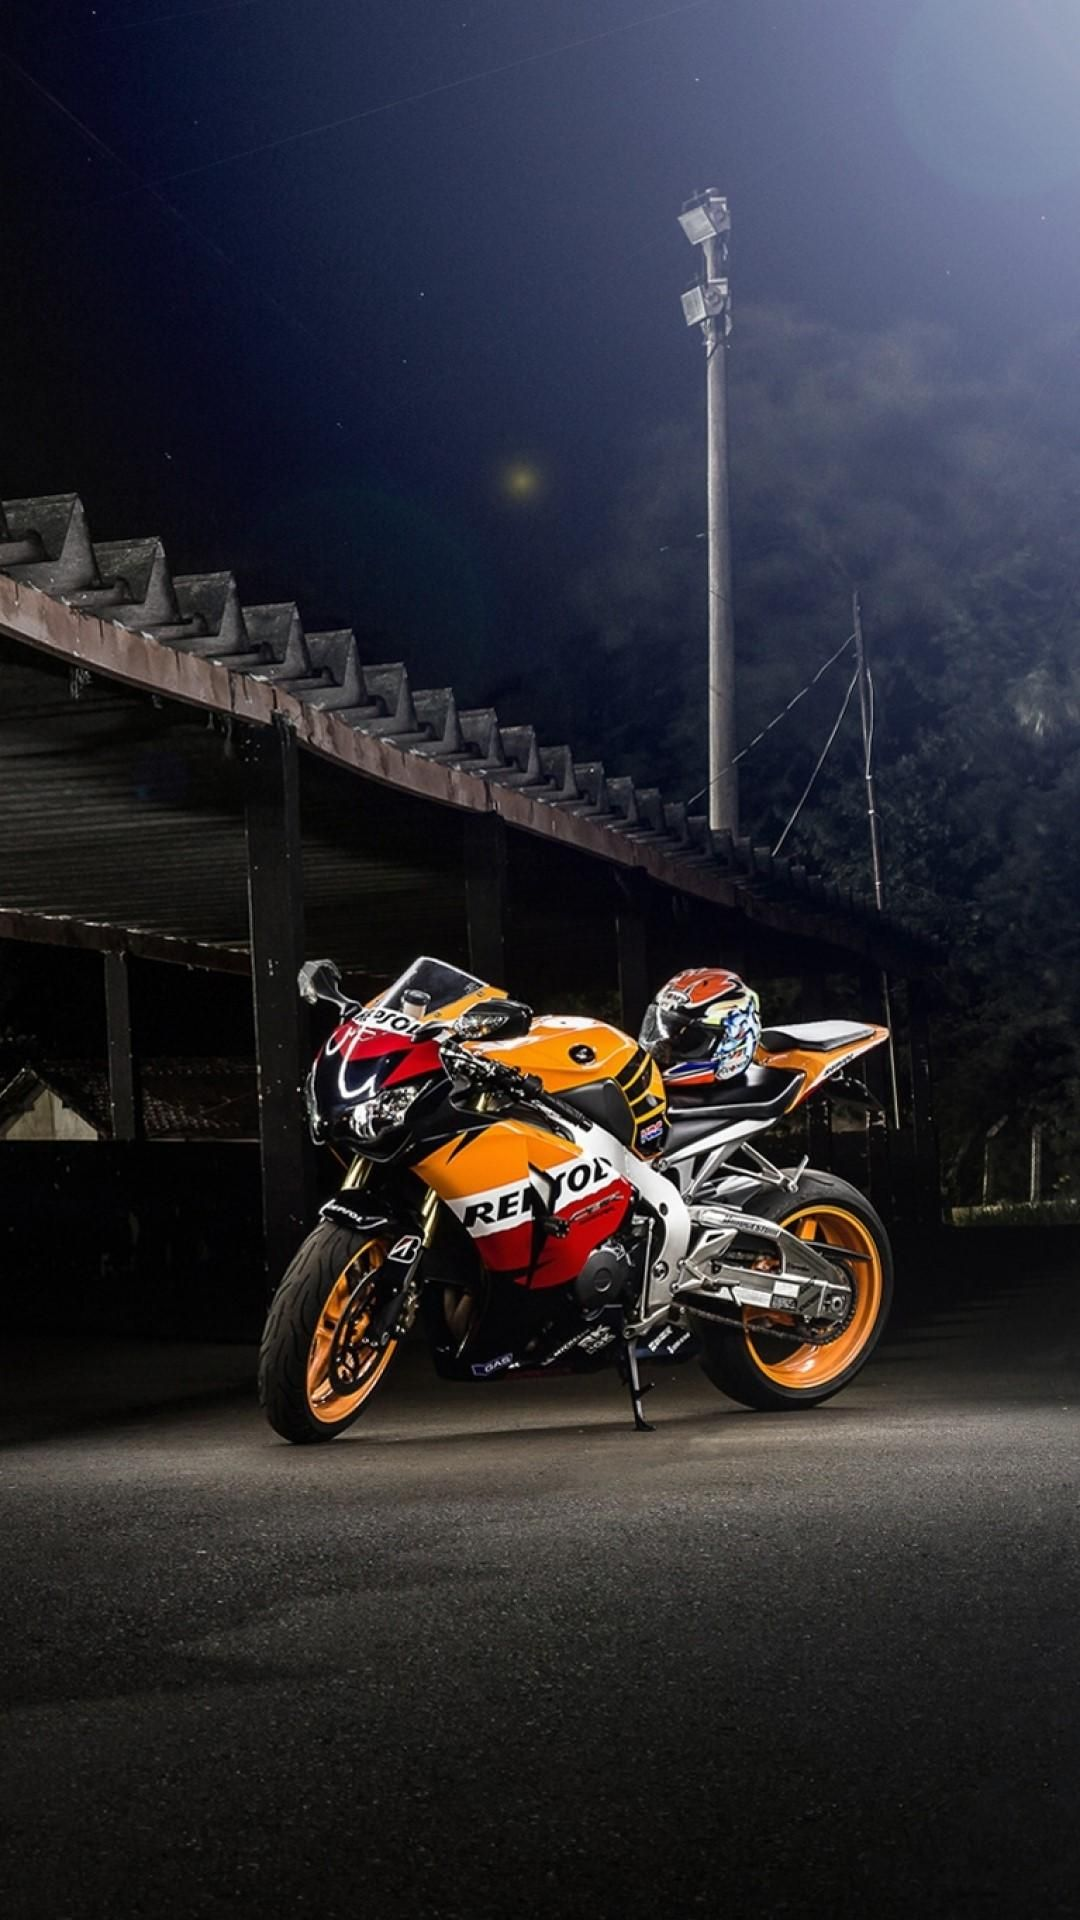 Bikes Iphone Wallpaper Honda Cbr1000rr Repsol Motorcycle Avec